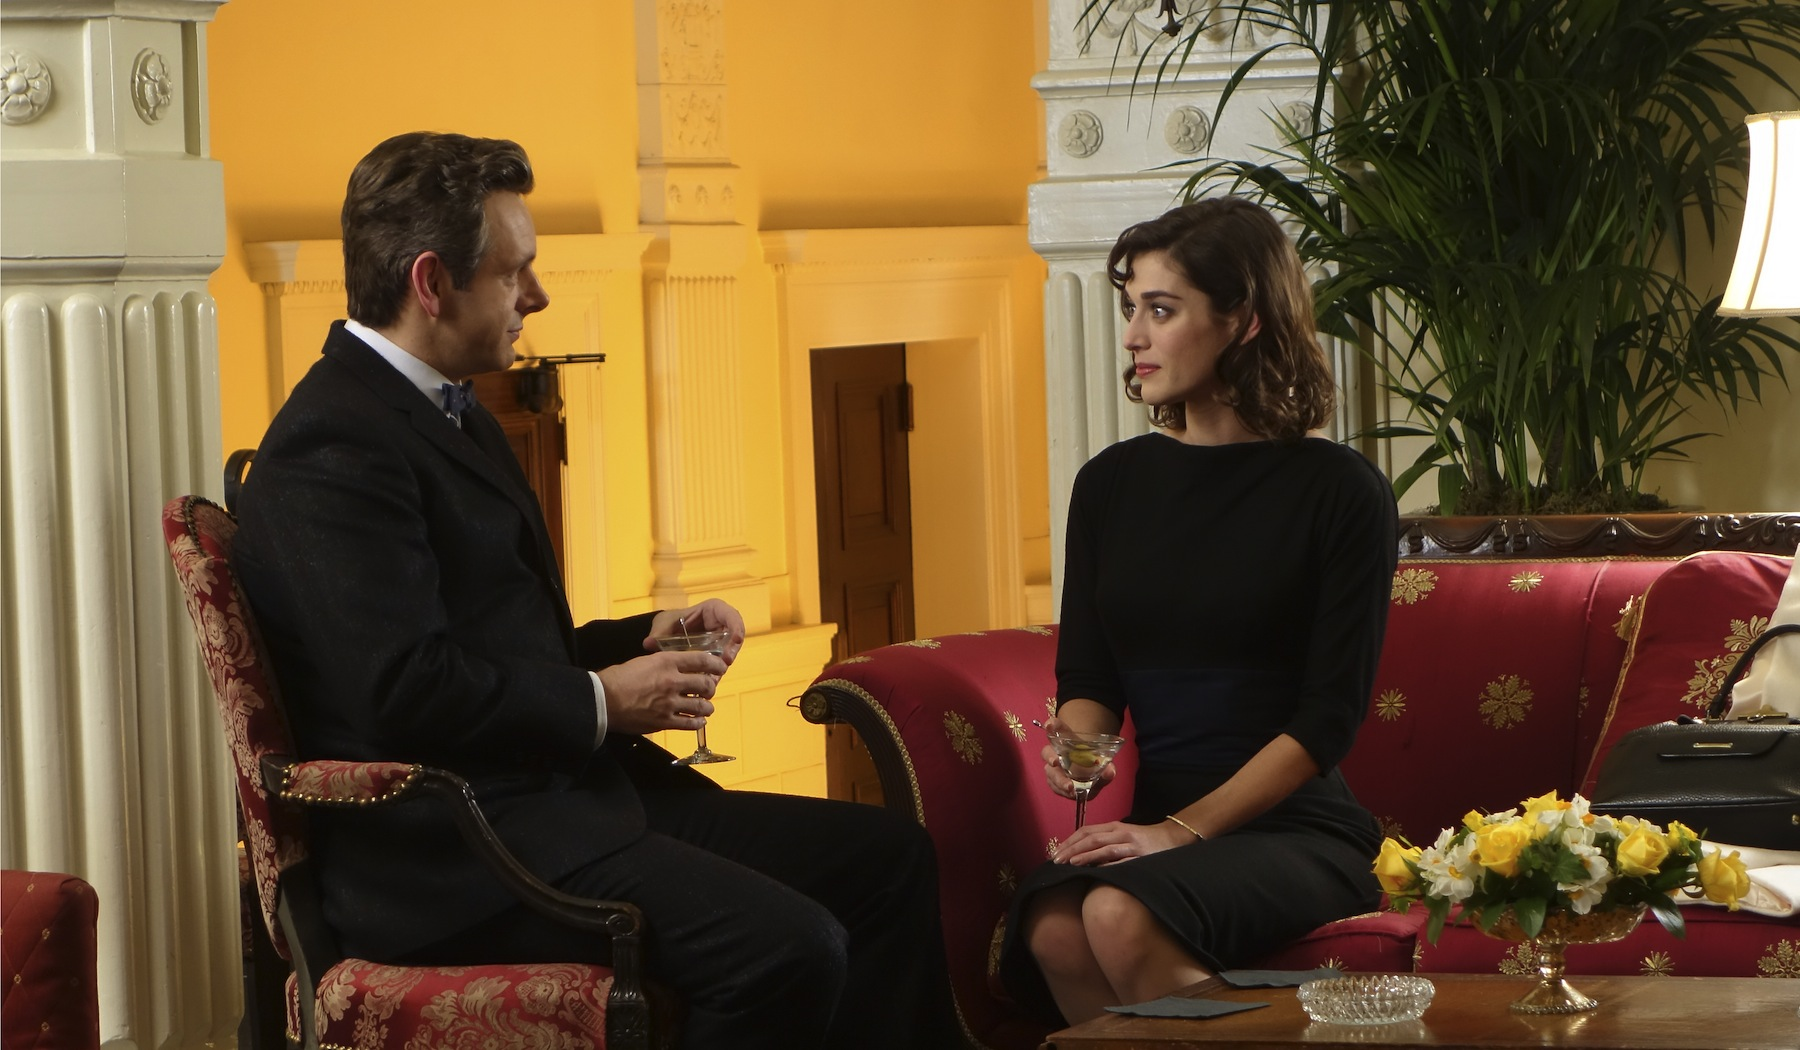 Michael Sheen as Dr. William Masters and Lizzy Caplan as Virginia Johnson in Masters of Sex